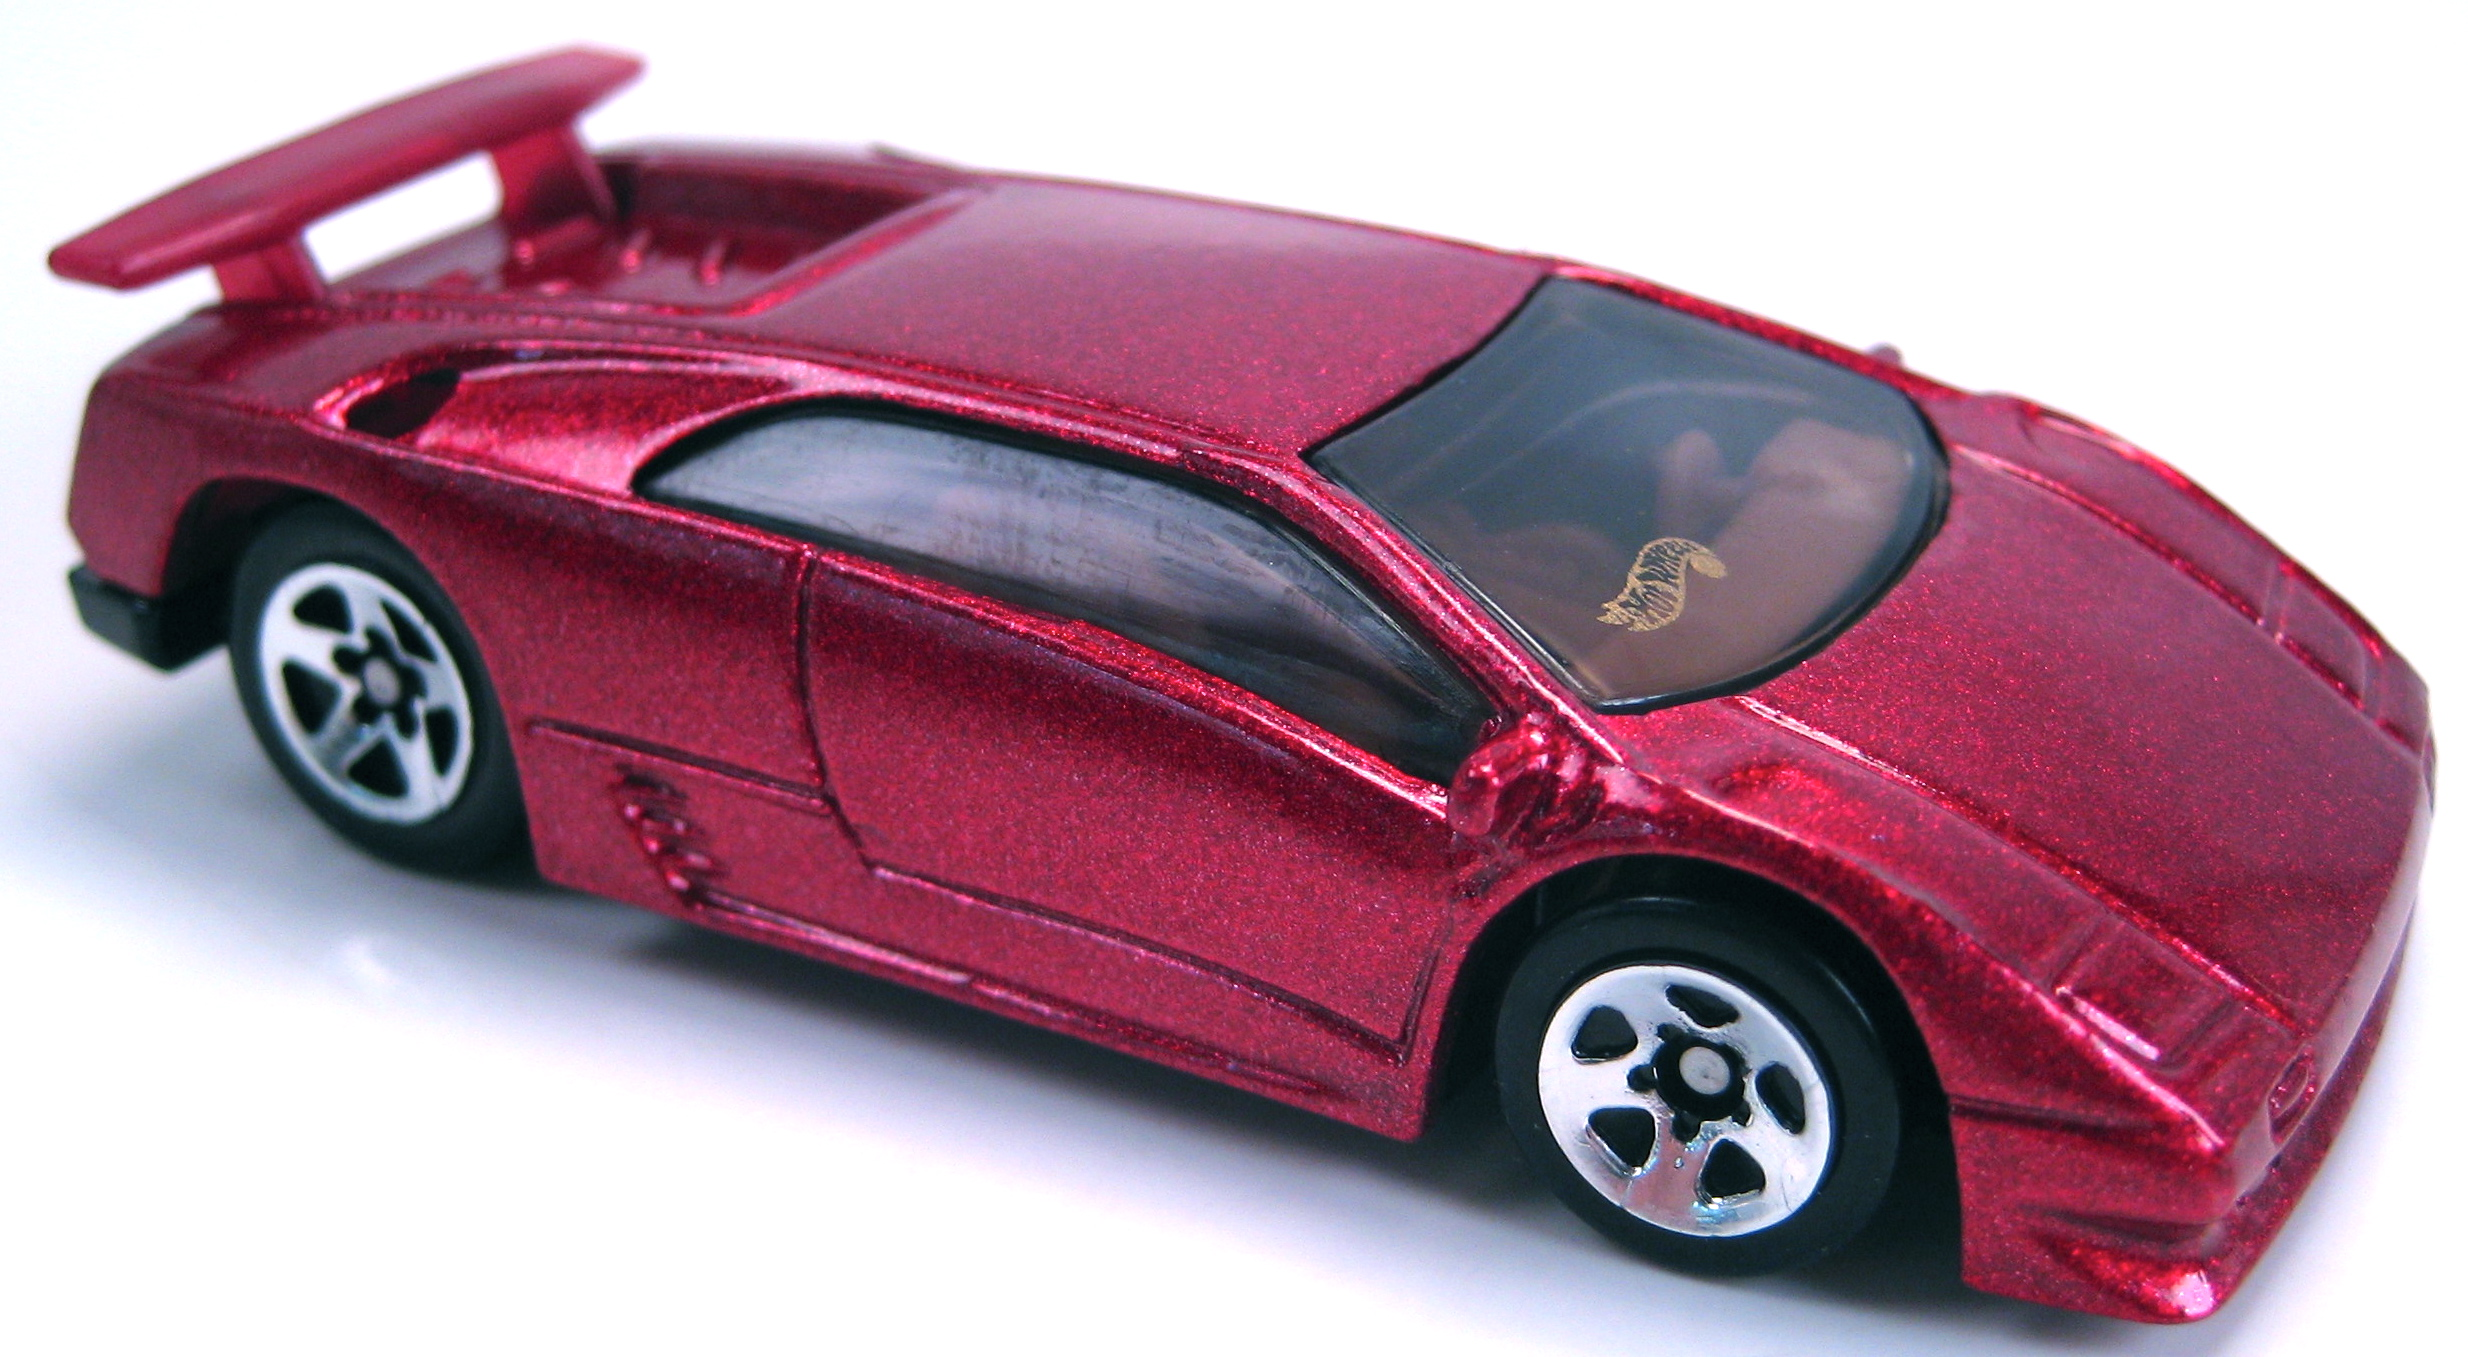 Lamborghini Diablo | Hot Wheels Wiki | FANDOM powered by Wikia on purple nissan gt-r 2014, purple dodge durango 2014, purple volkswagen beetle 2014, purple corvette 2014, purple bugatti veyron 2014, purple dodge challenger 2014, purple lotus elise 2014,